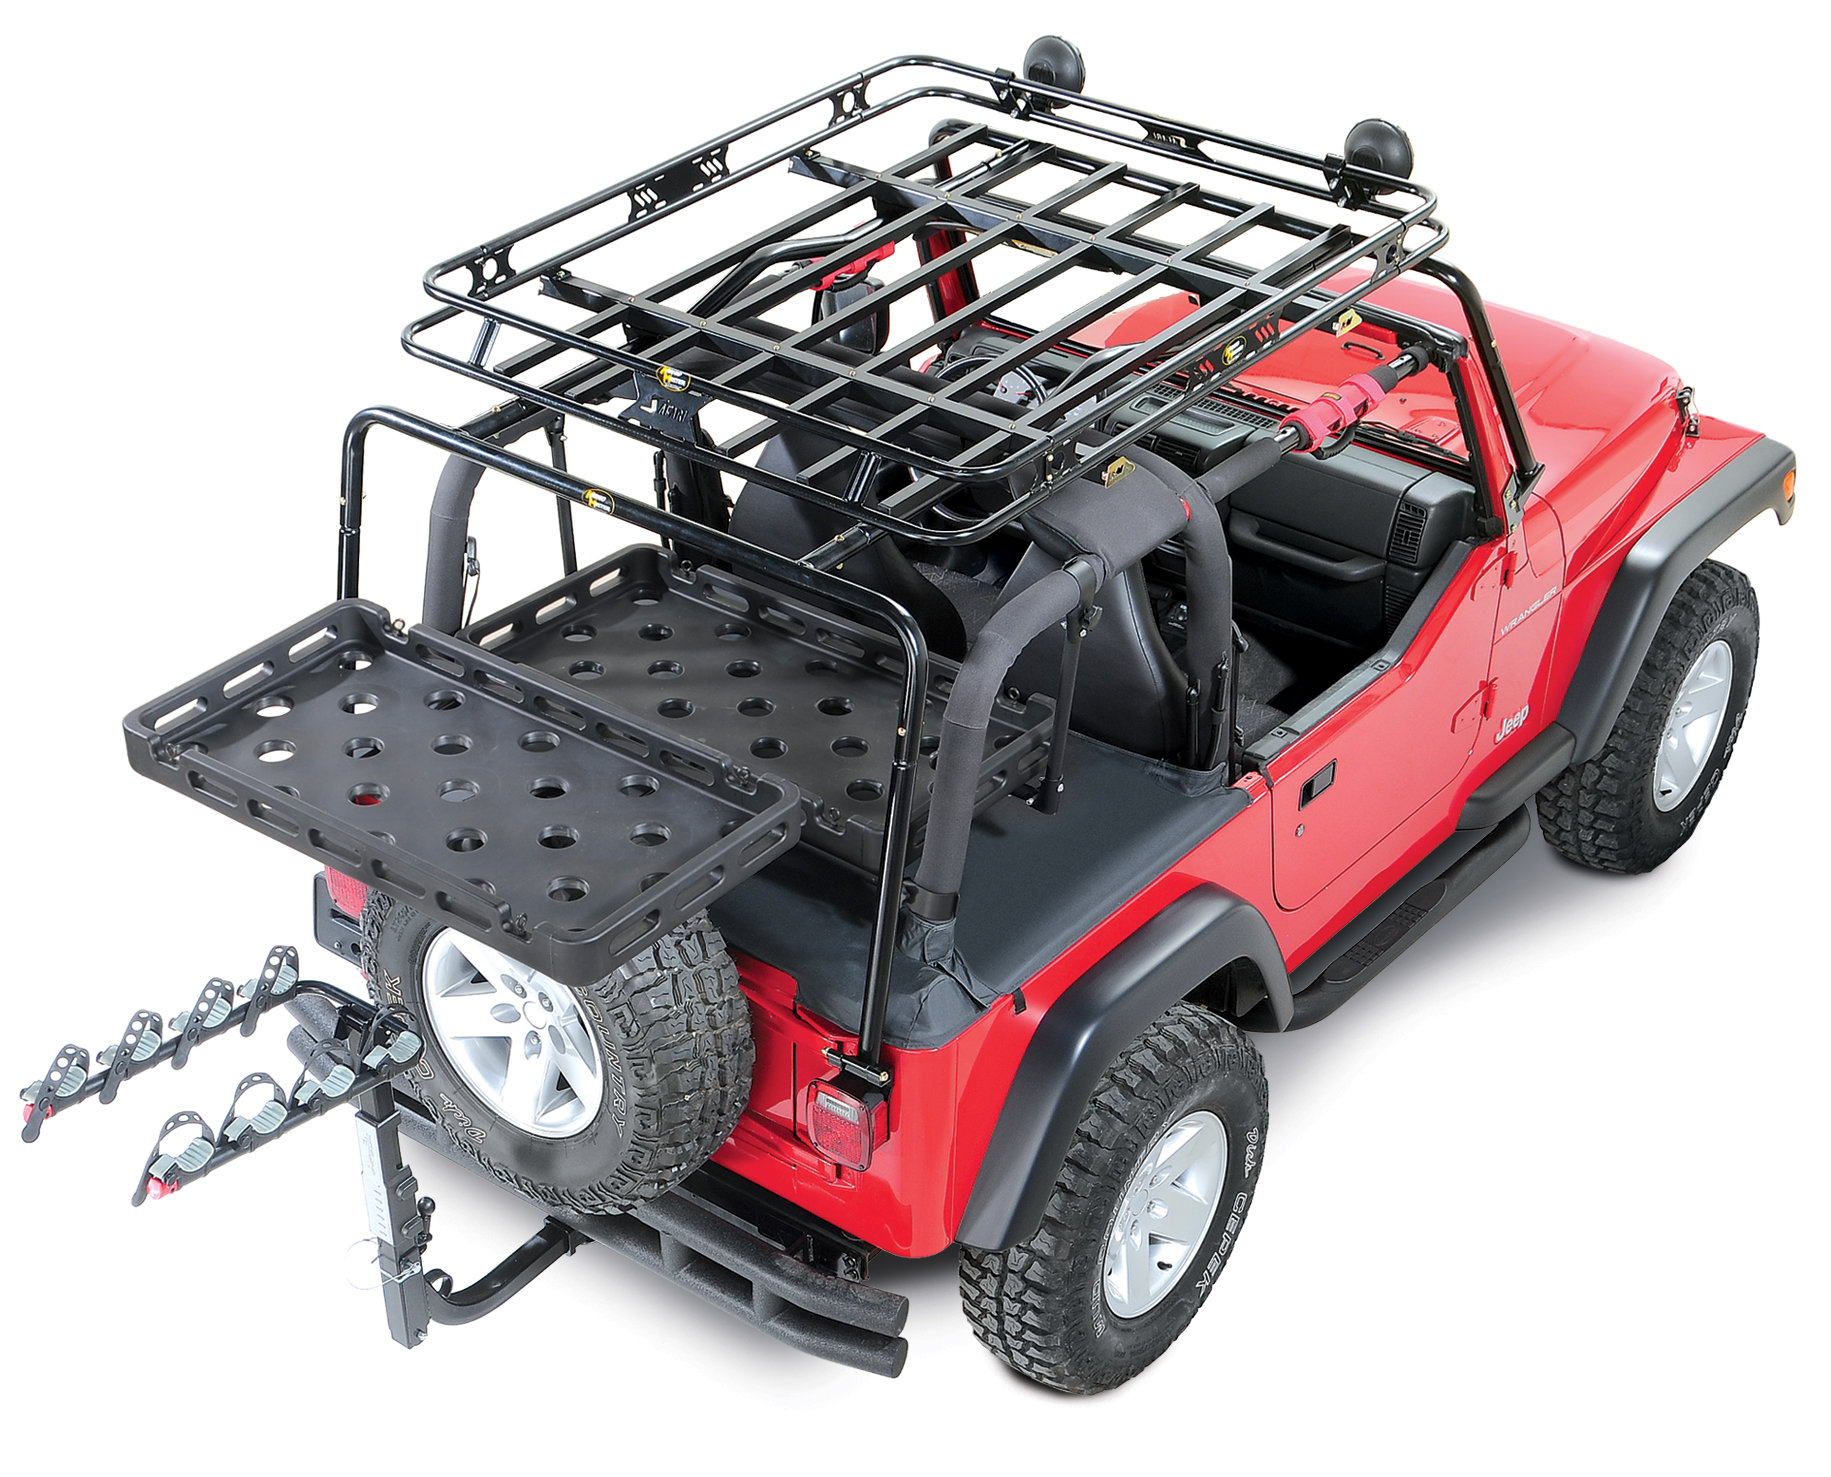 bestop highrock 4x4 tailgate rack bracket with universal rack tray for 87 06 jeep wrangler yj tj unlimited